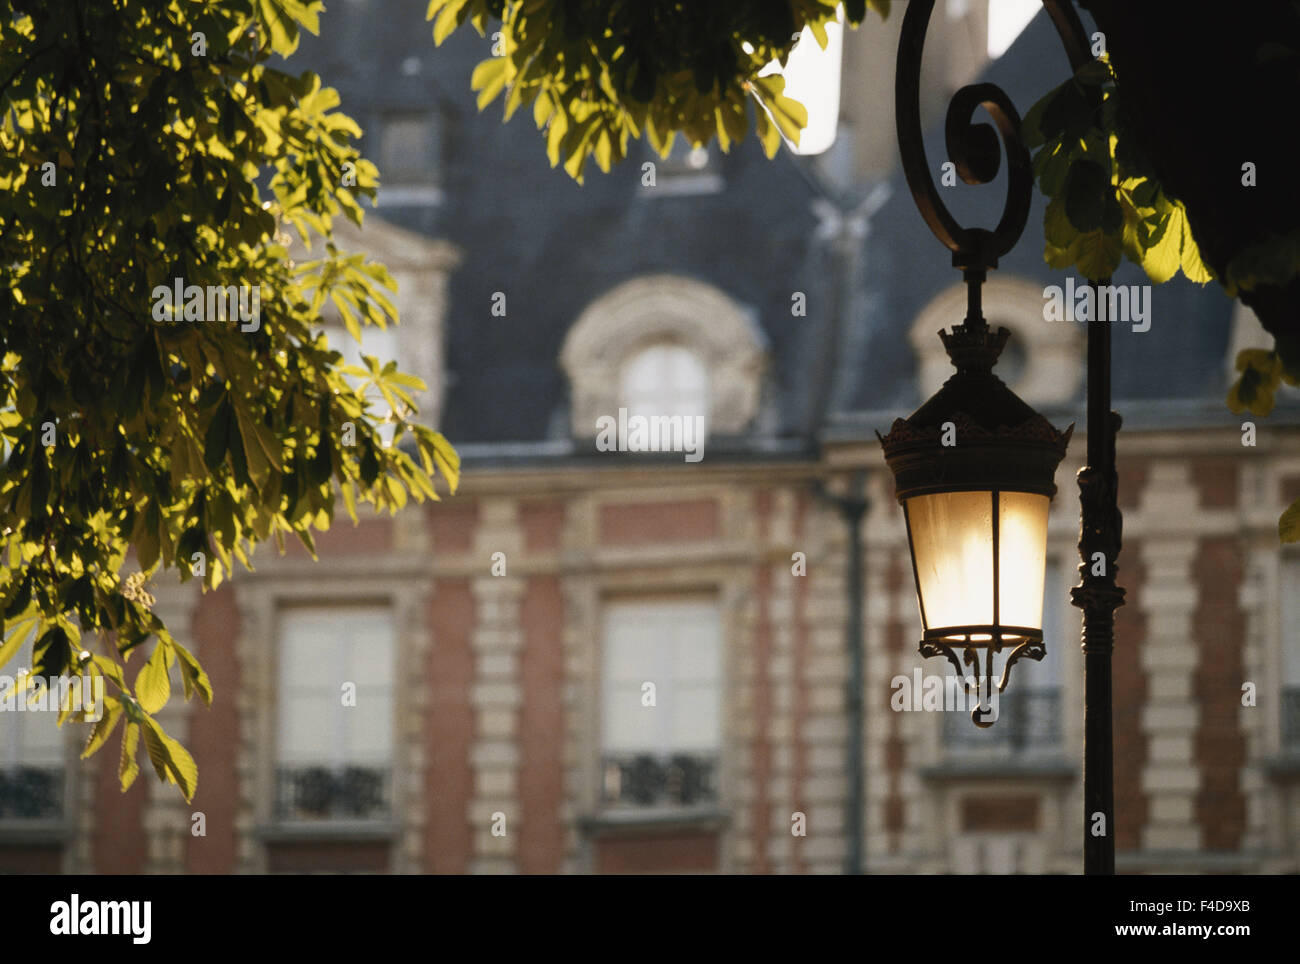 France, Paris, Place Des Vosges, Streetlight Detail. (Large format sizes available) - Stock Image